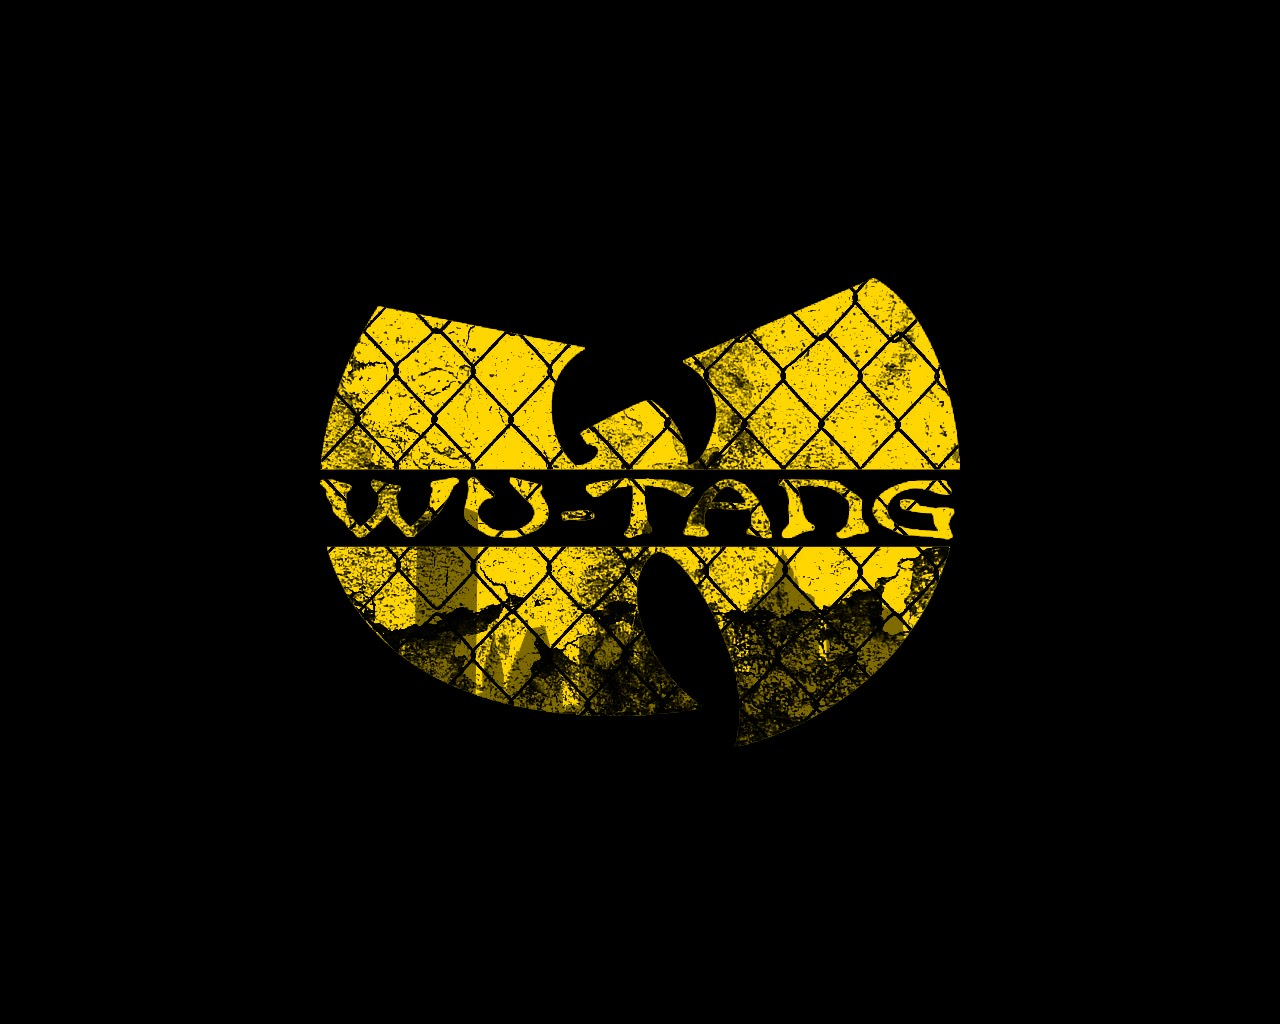 wu tang quotes wallpapers quotesgram